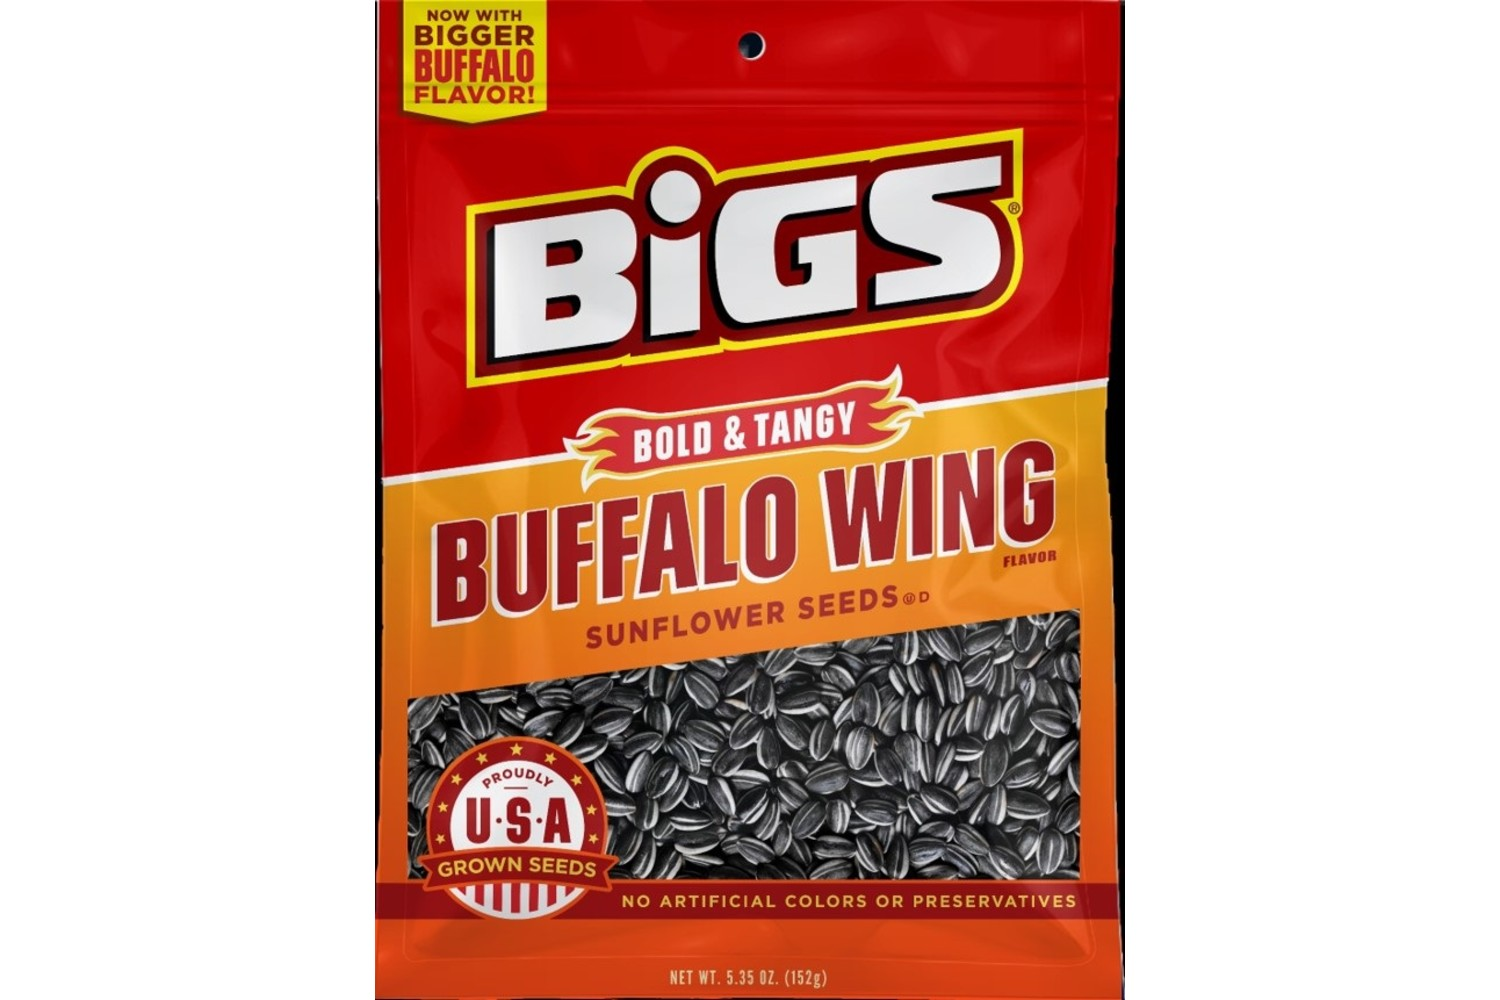 BIGS Buffalo Wing Sunflower Seeds